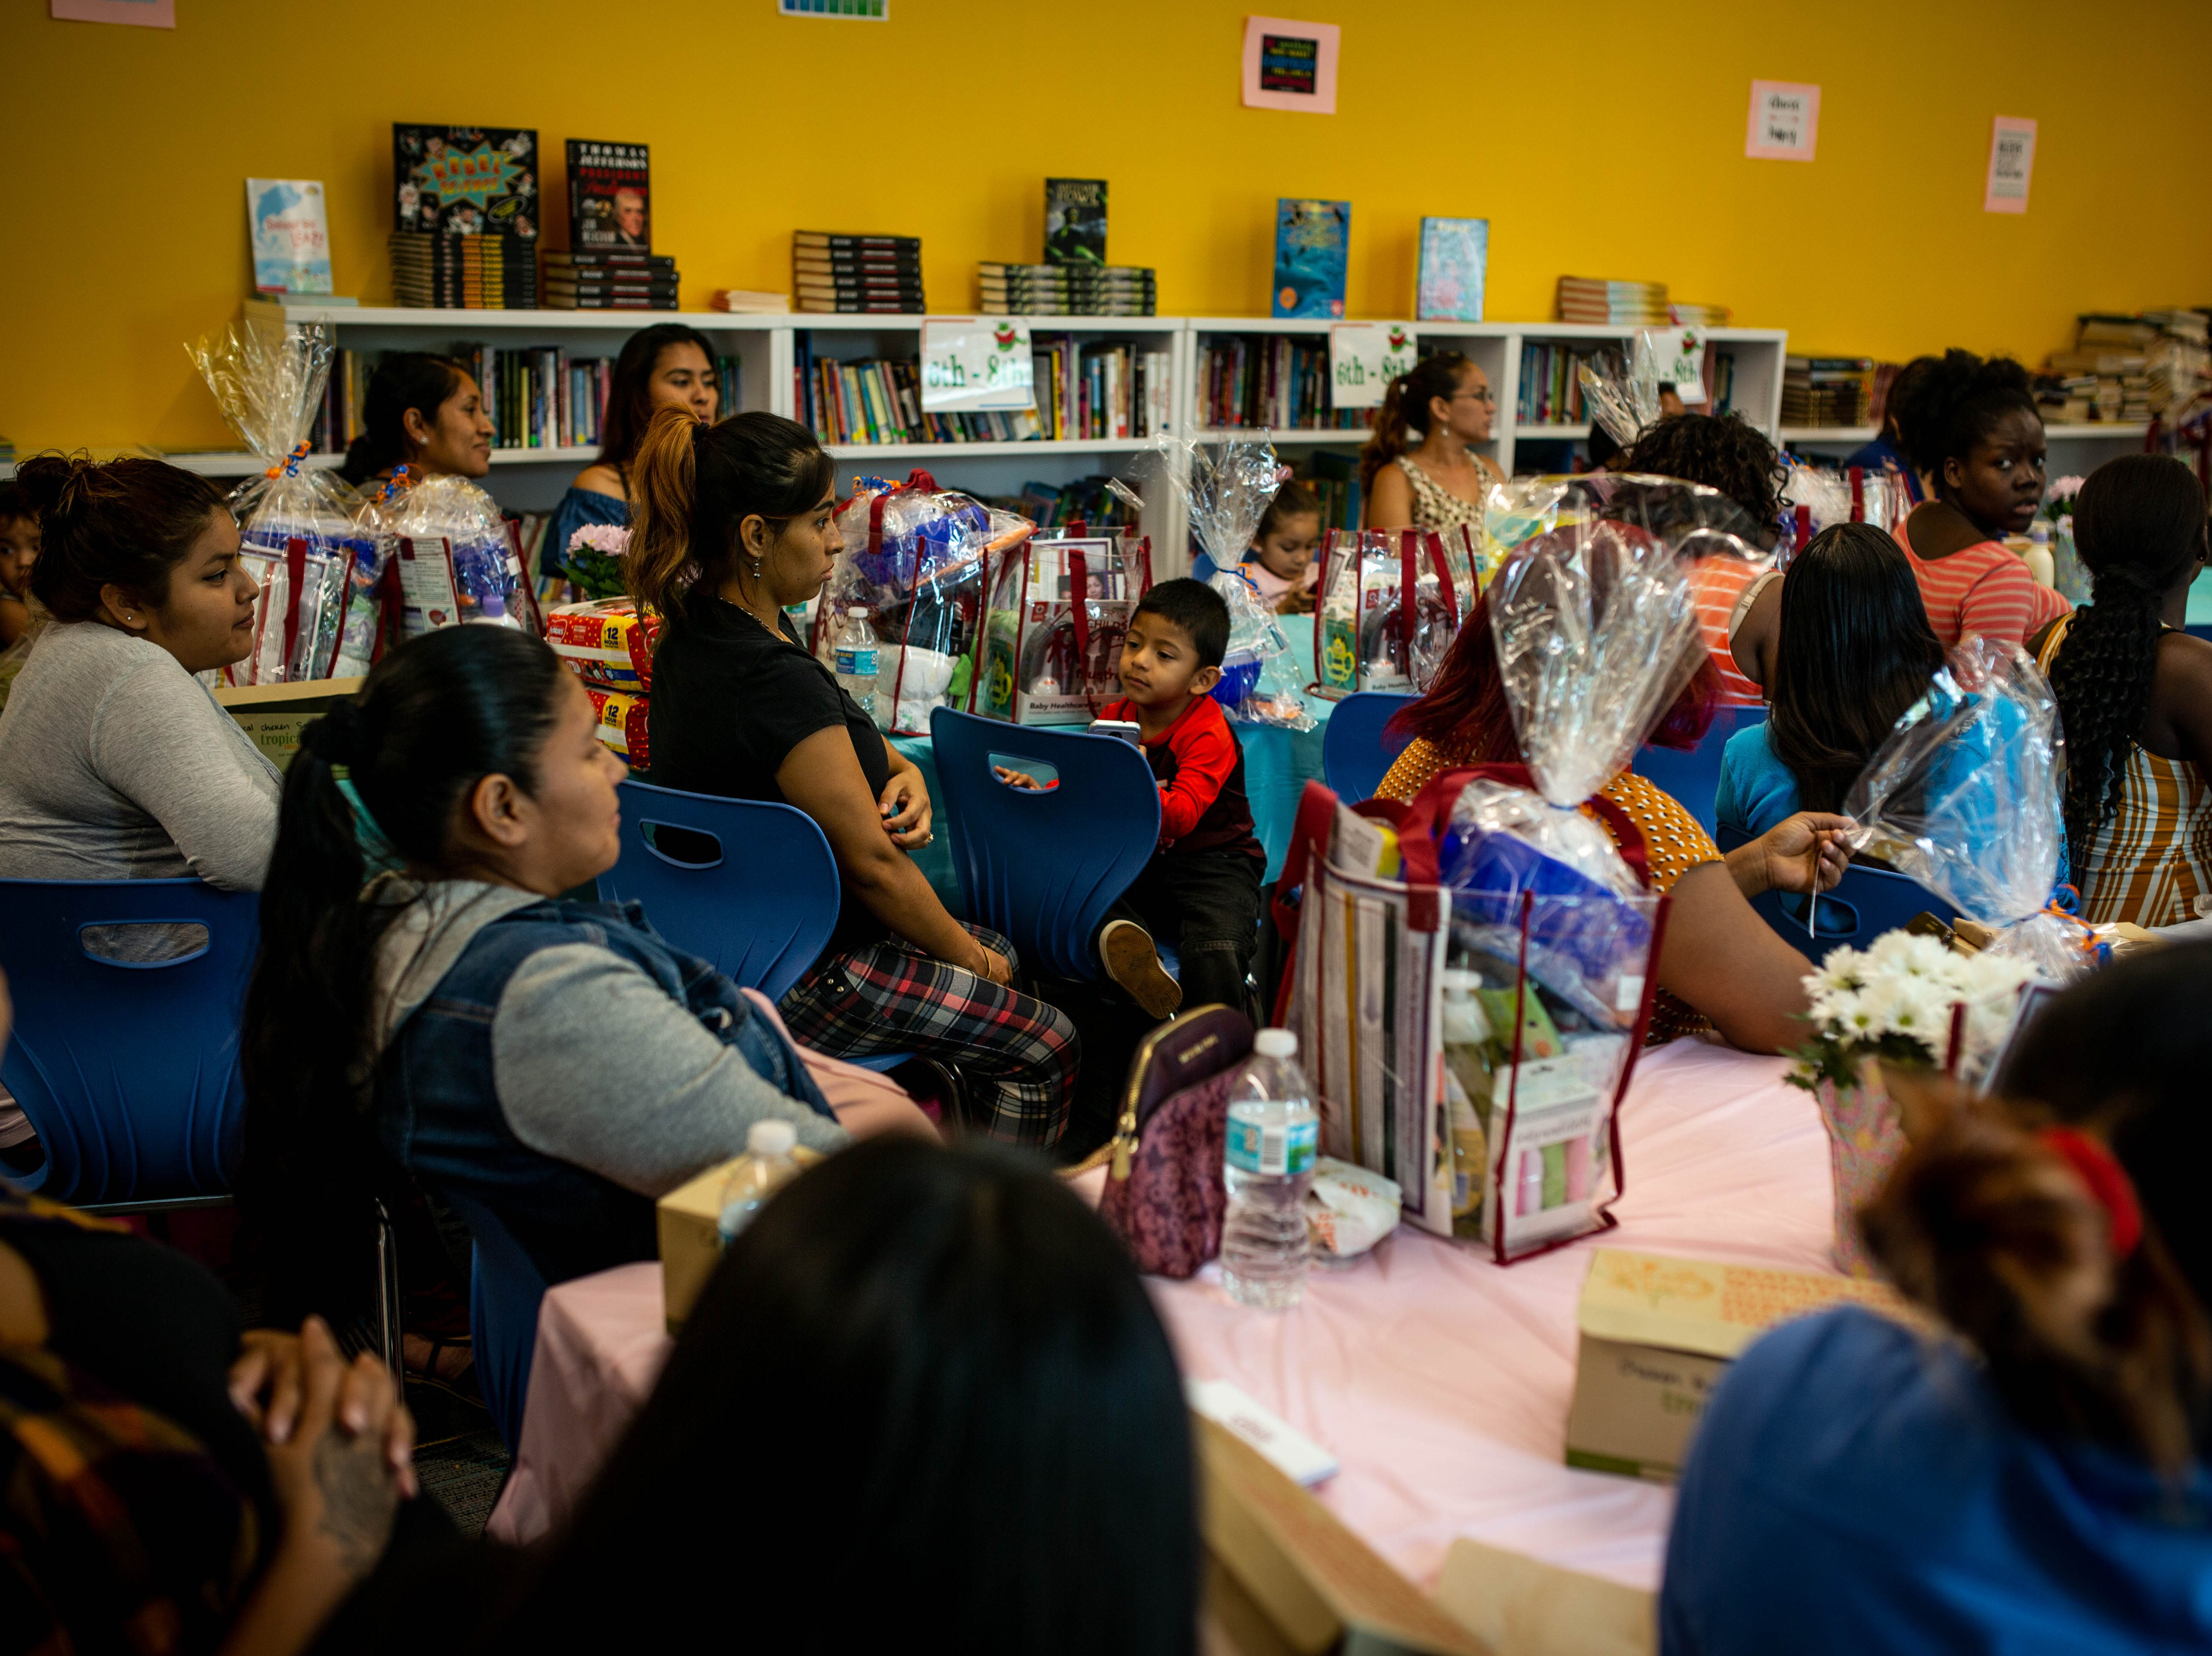 The fourth annual Immokalee Community Baby Shower was held at the Boys & Girls Club in Immokalee on Thursday, May 9, 2019. During the event, many speakers presented information regarding prenatal and postnatal care.